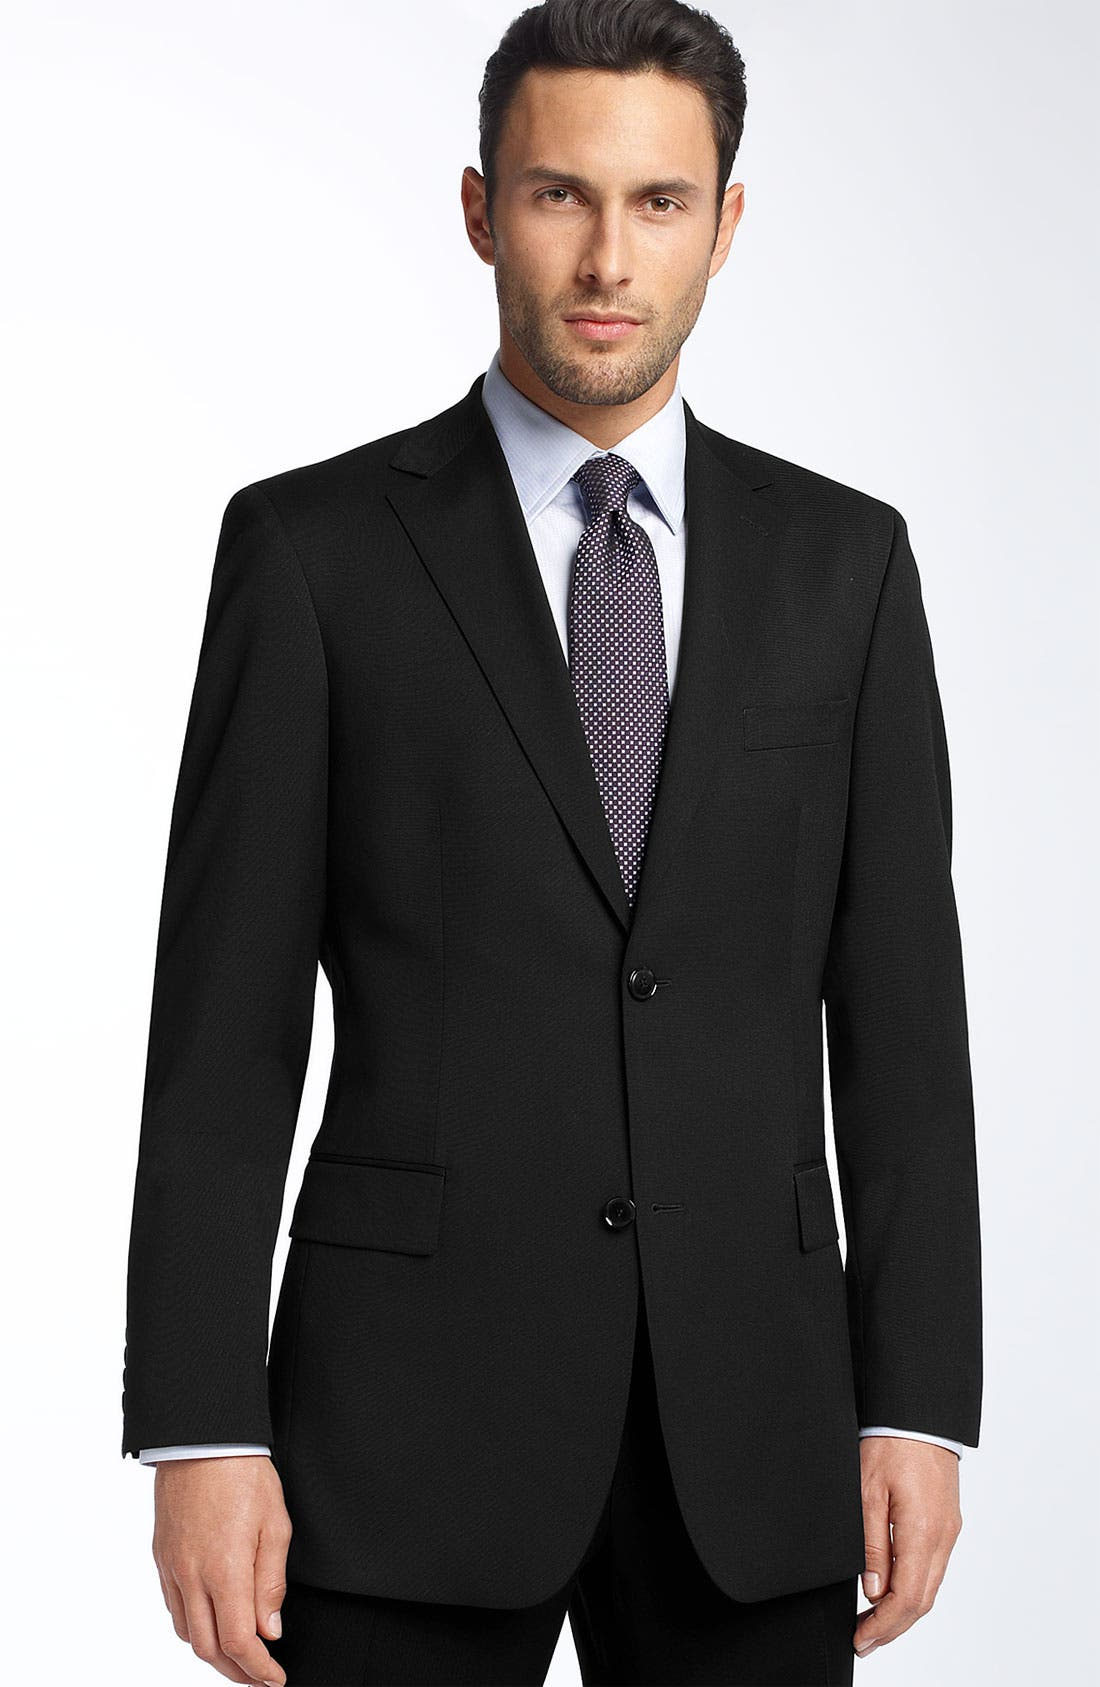 BOSS HUGO BOSS 'Pasolini' Black Virgin Wool Sportcoat,                             Main thumbnail 1, color,                             001